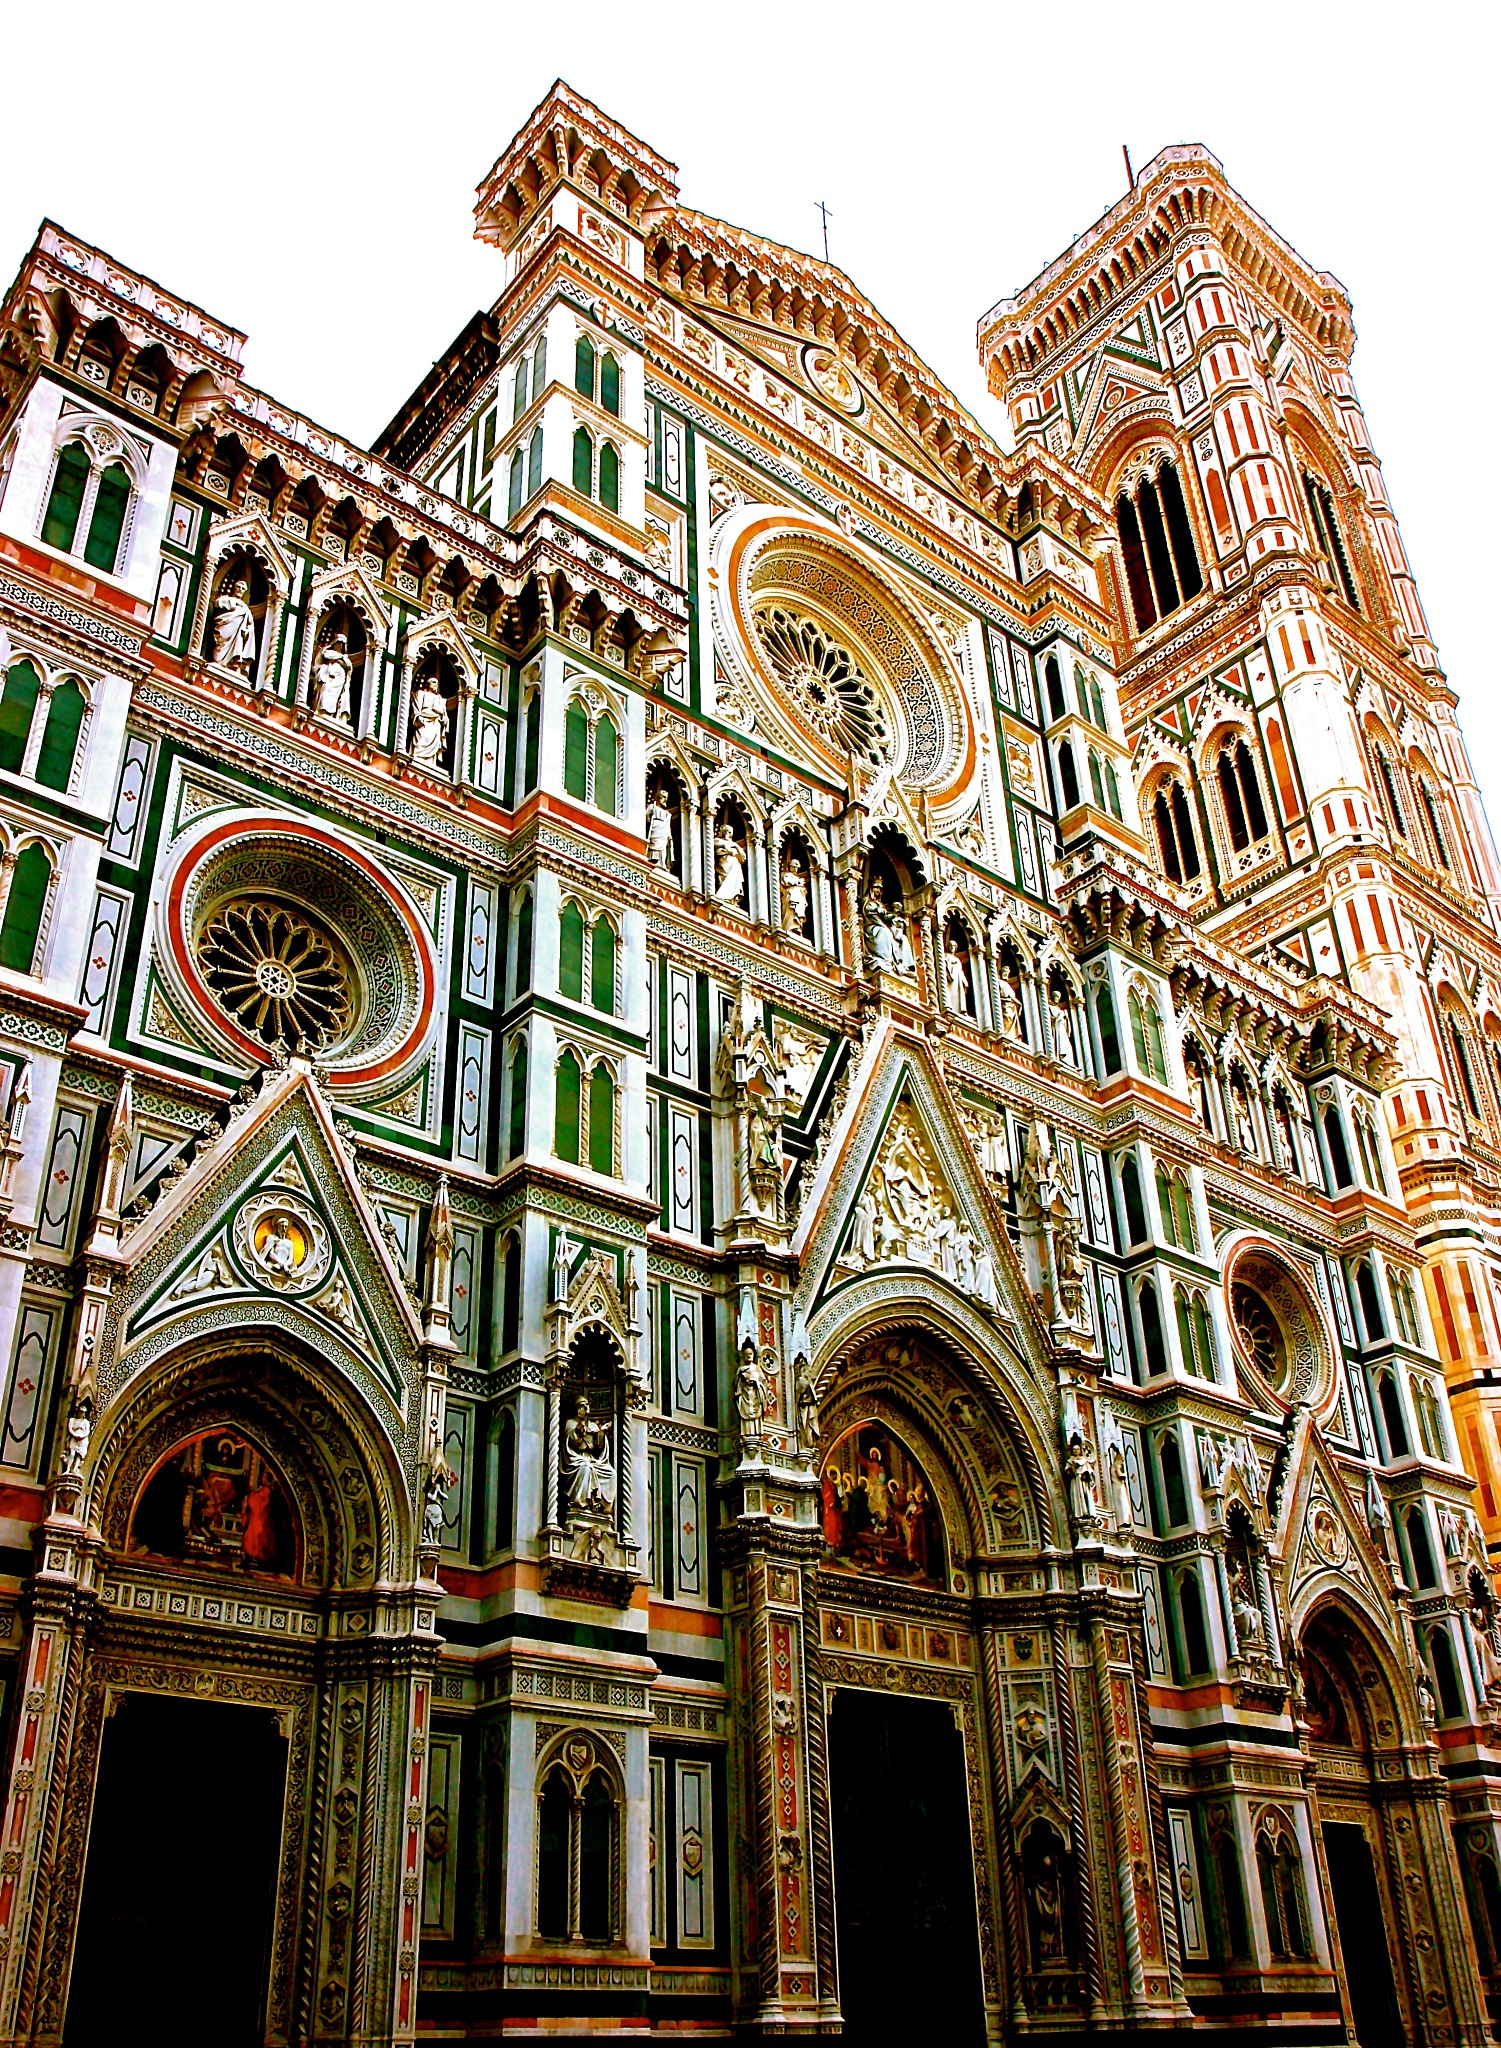 A Florence Masterpiece by Steven Thomas Densley